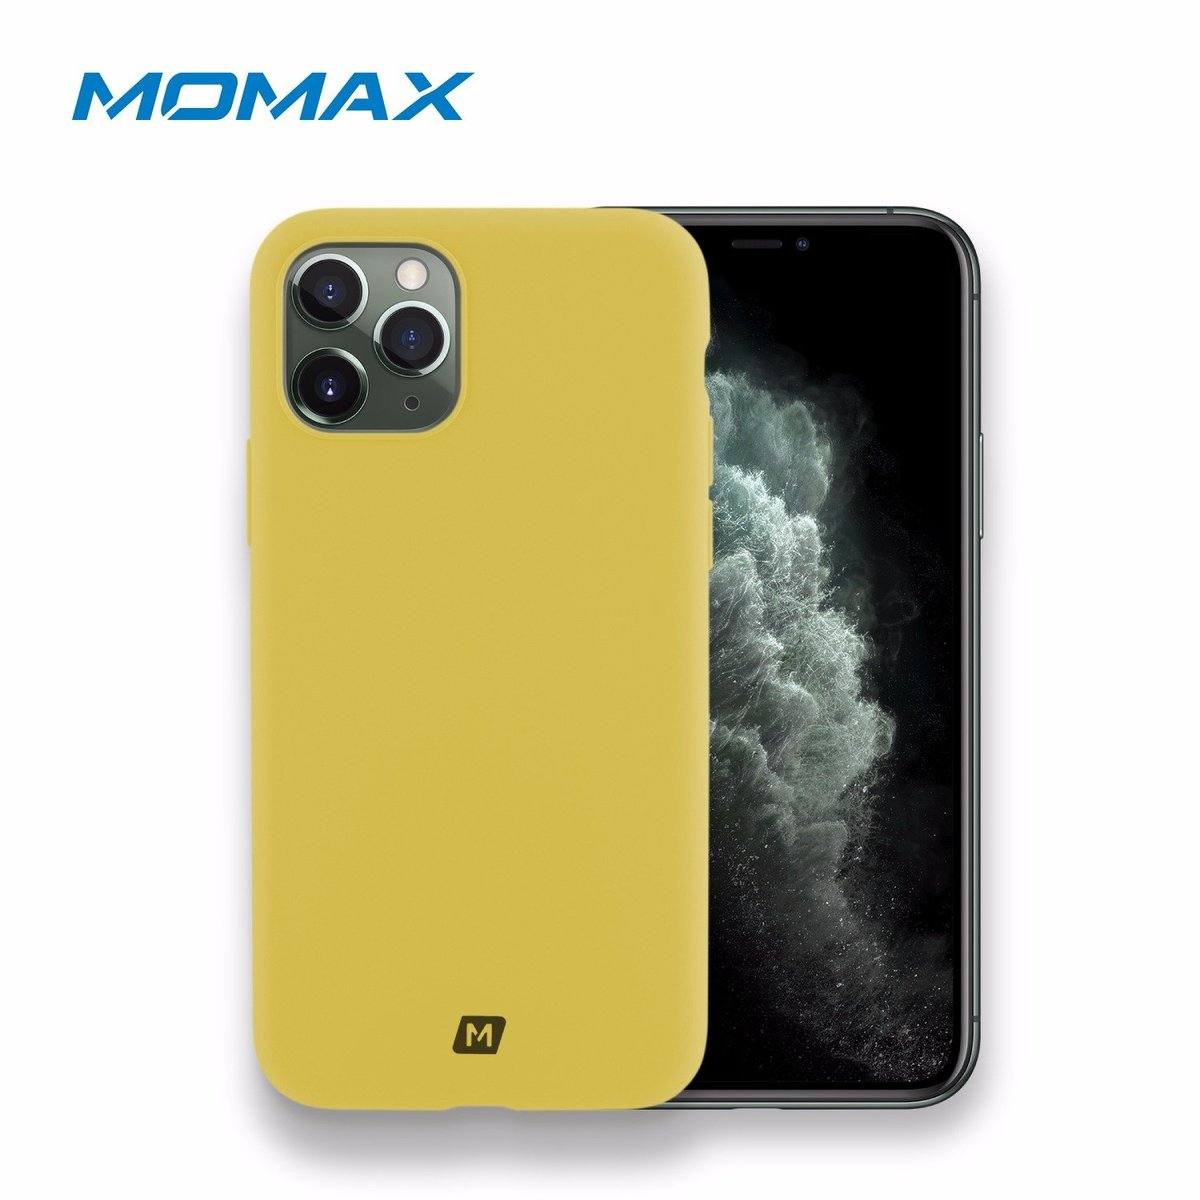 "MOMAX Silicone2.0 iPhone11-Pro 5.8"" Case (Yellow)"